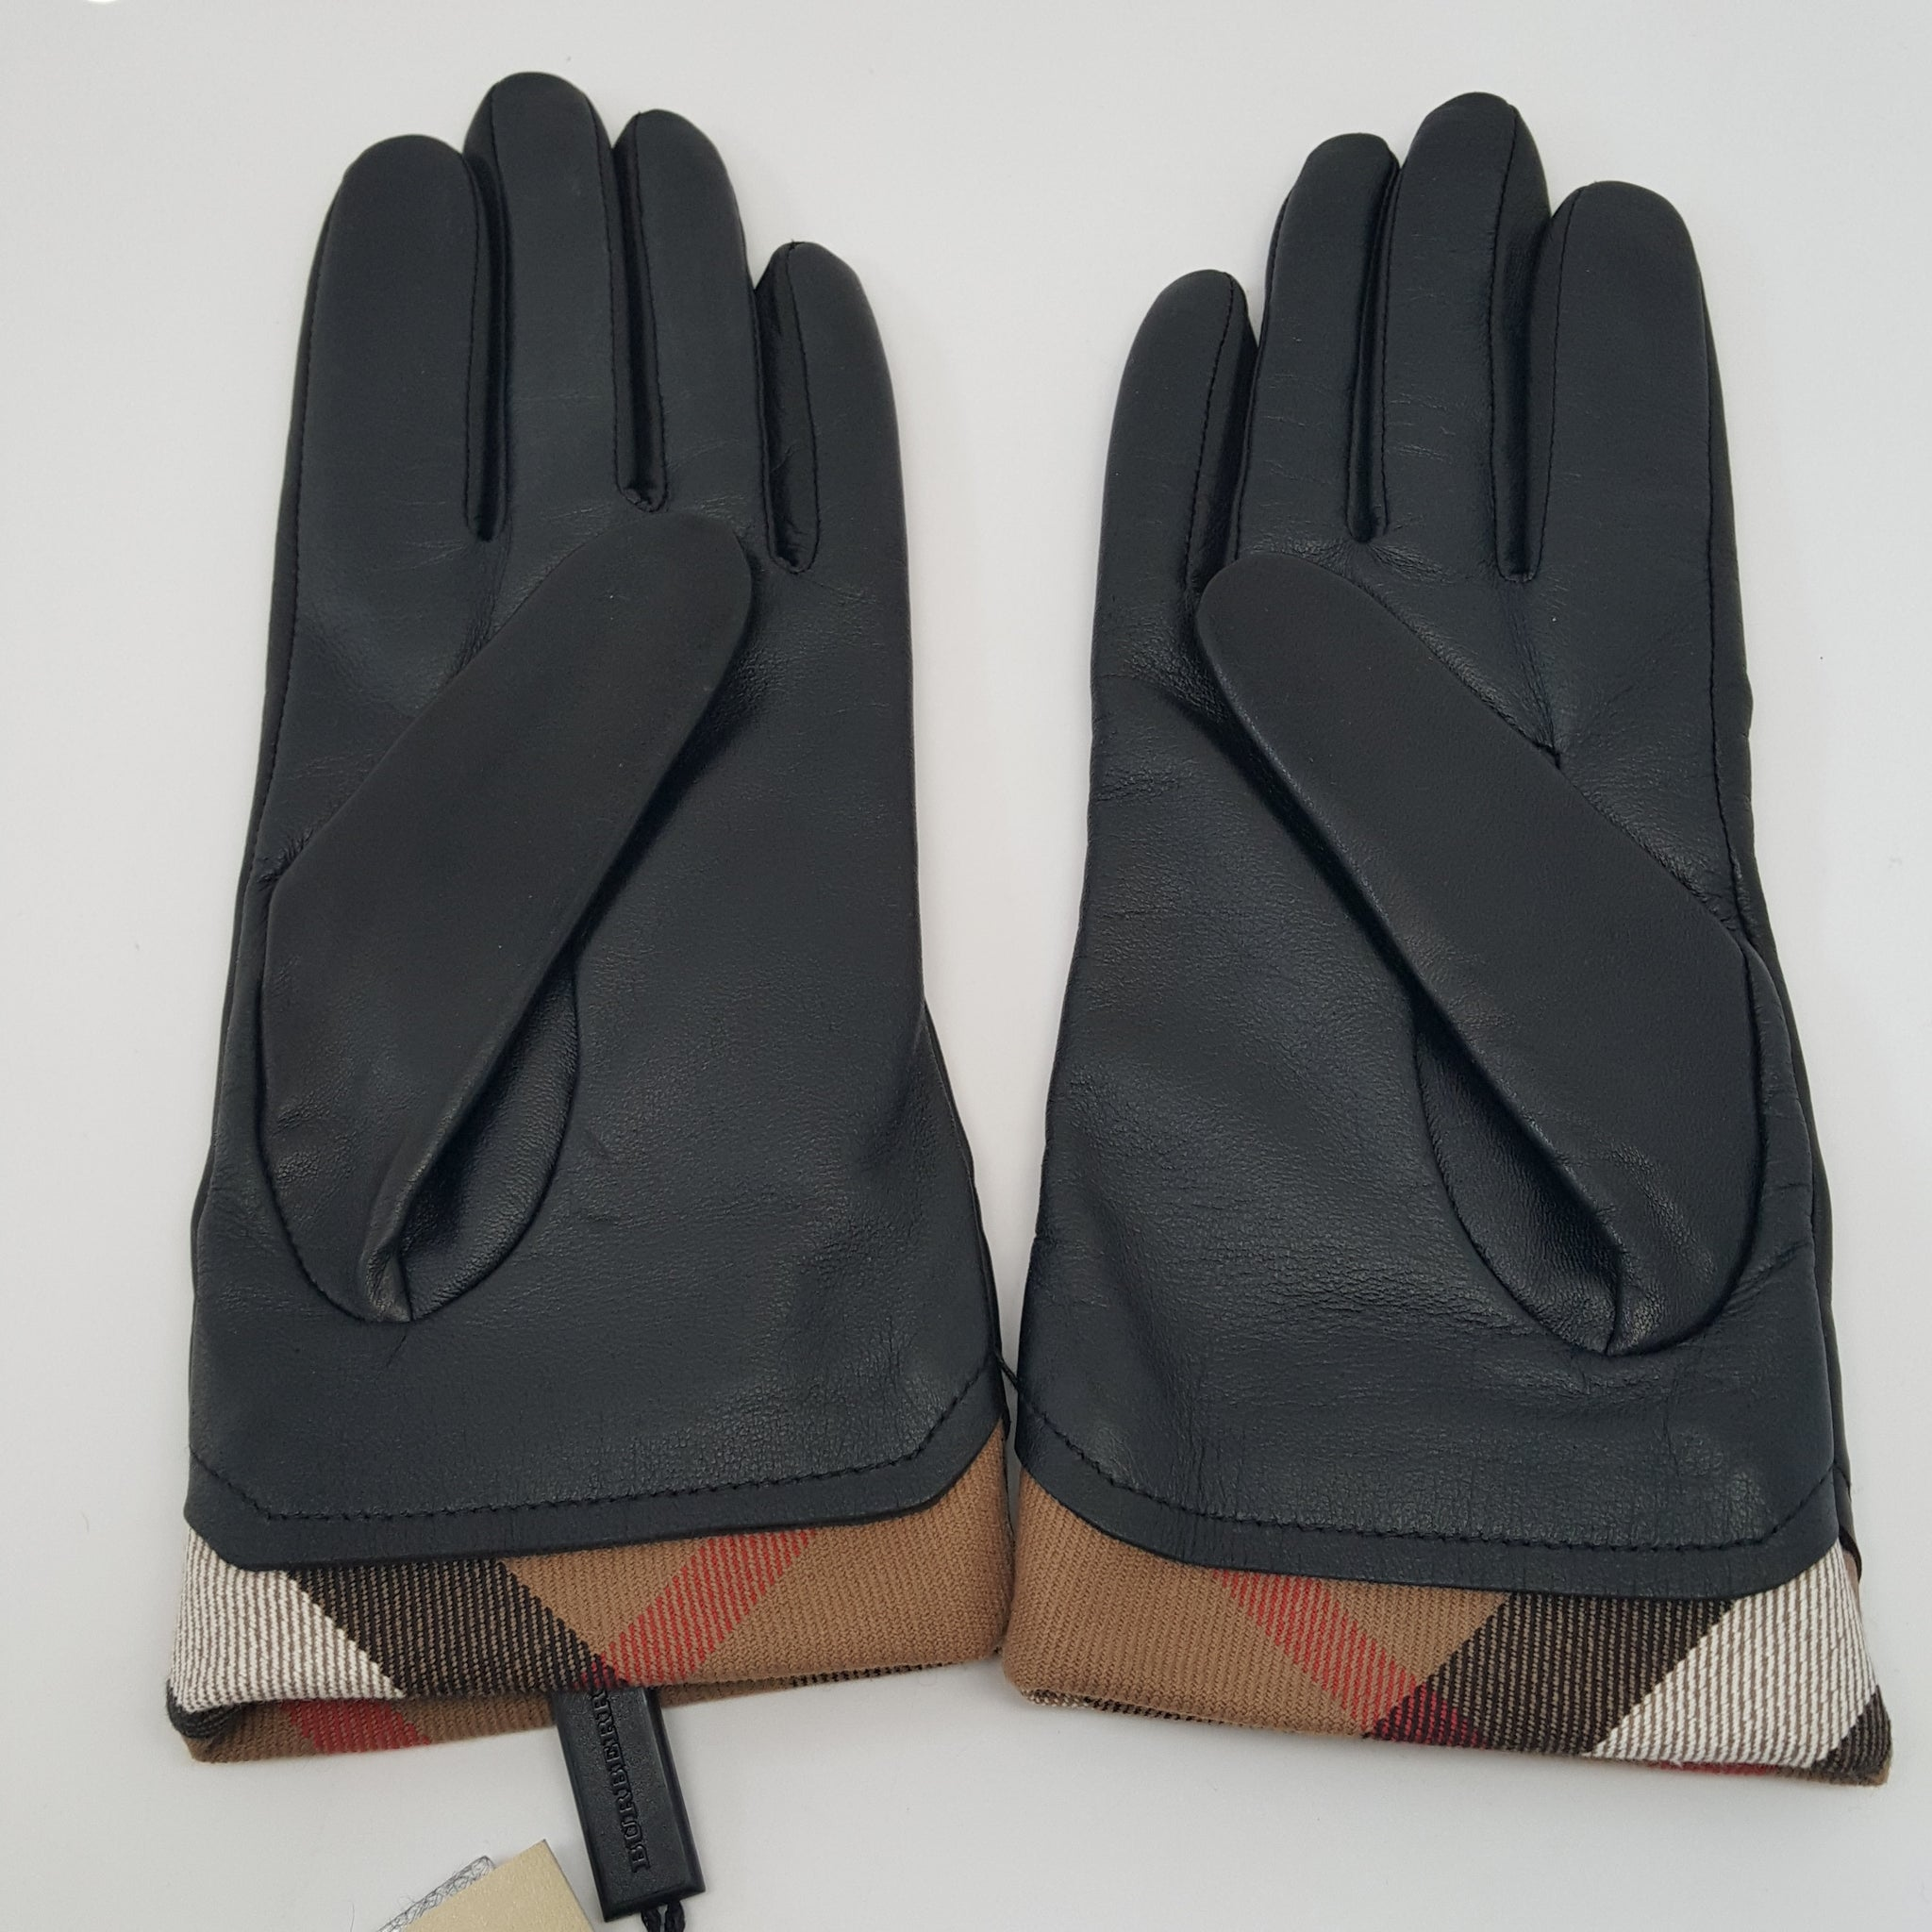 BURBERRY LEATHER HOUSECHECK TRIM JENNY TOUCH GLOVE - SIZE 7.5